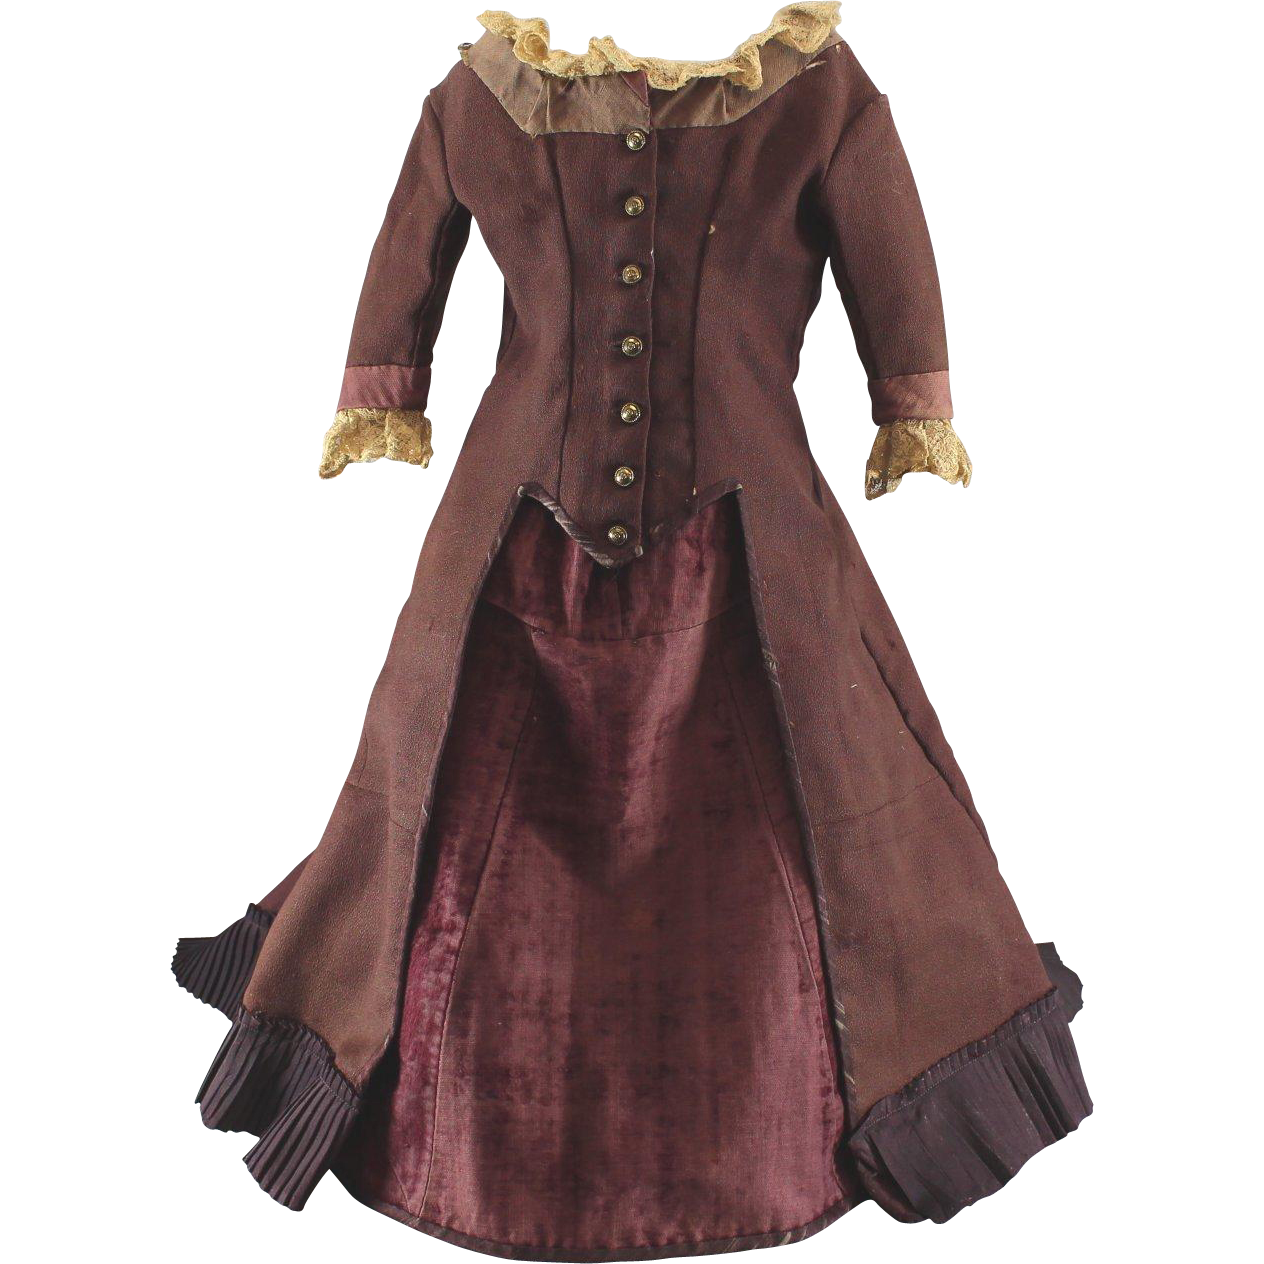 Antique French Fashion Doll Gown Large Size c1870s